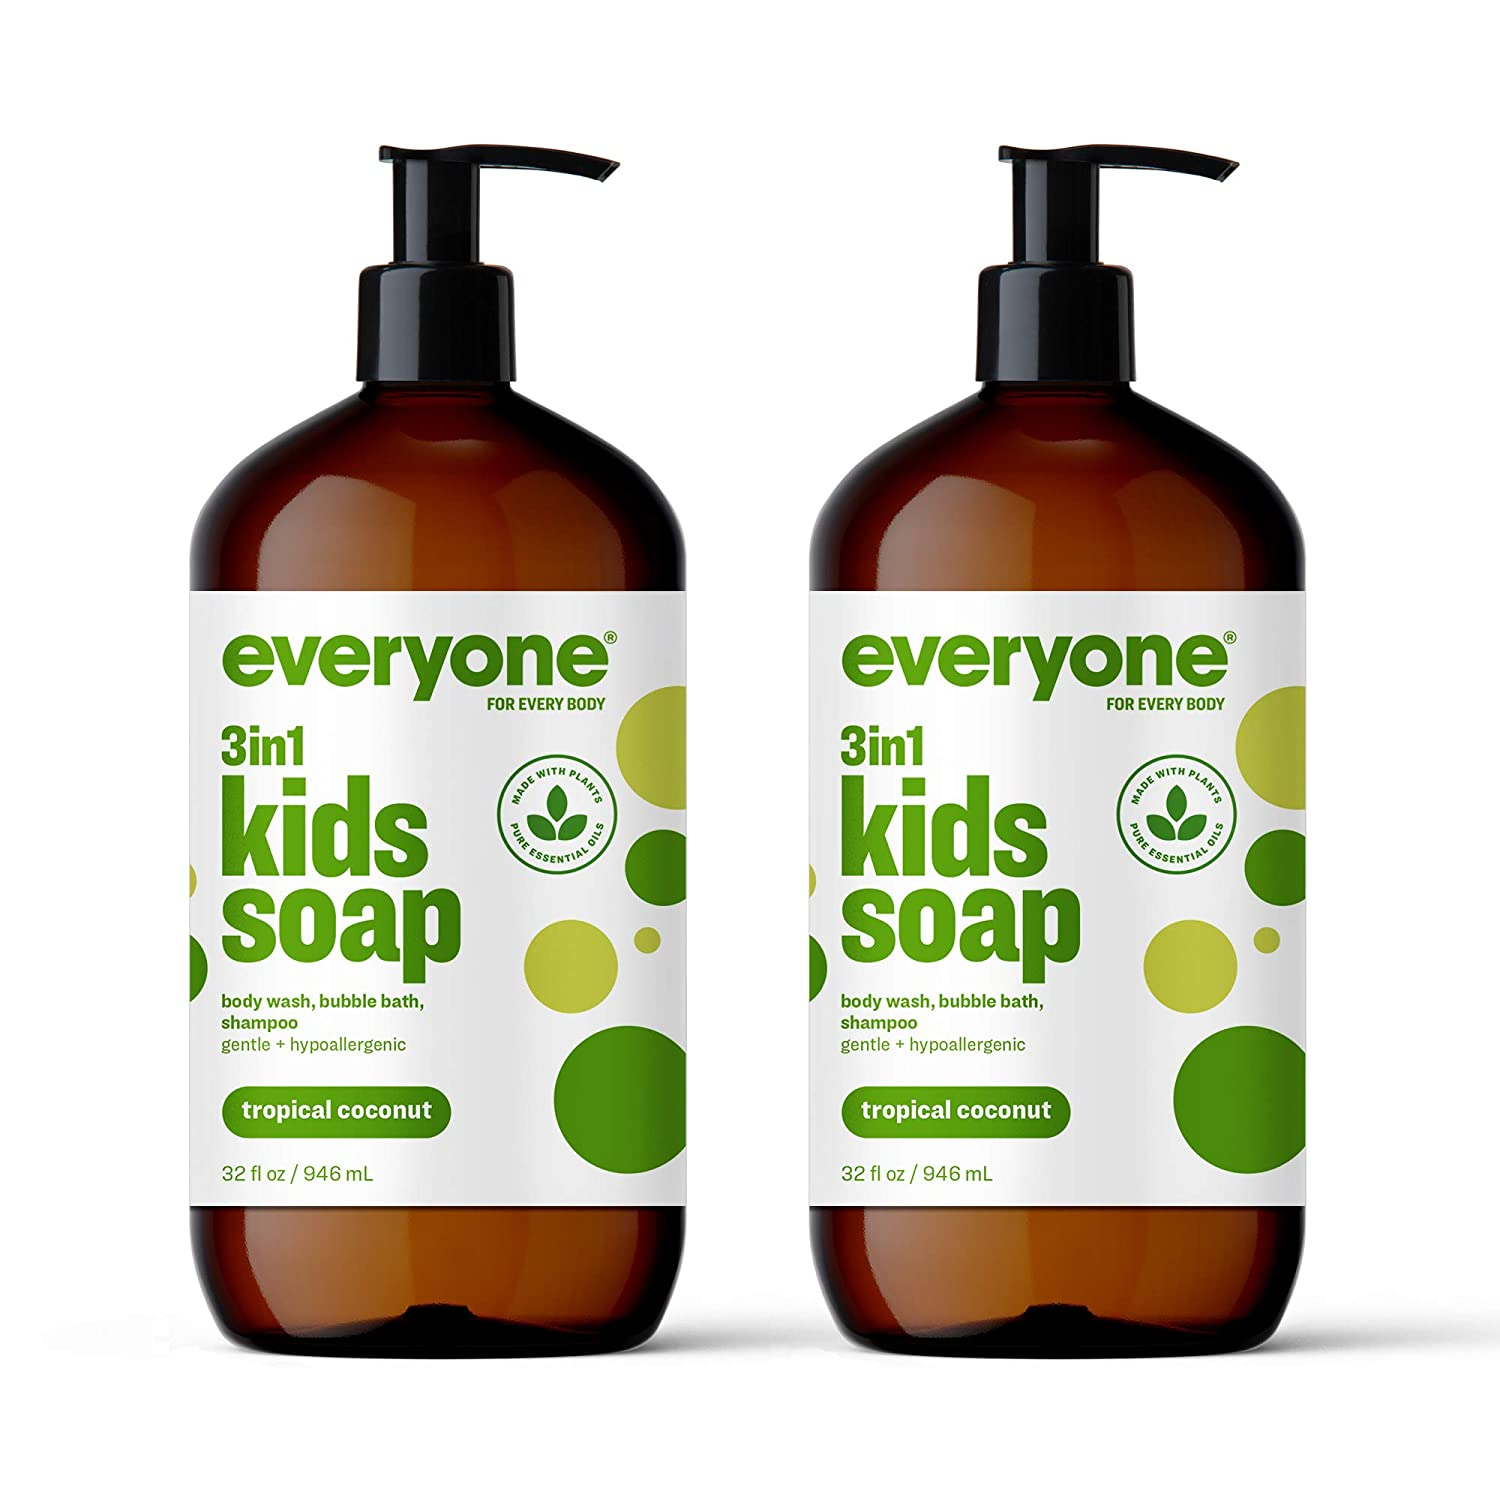 Everyone 3-in-1 Kids Soap: Body Wash, Bubble Bath, and Shampoo, Tropical Coconut Twist, 32 Ounce, 2 Count- Packaging May Vary : Beauty